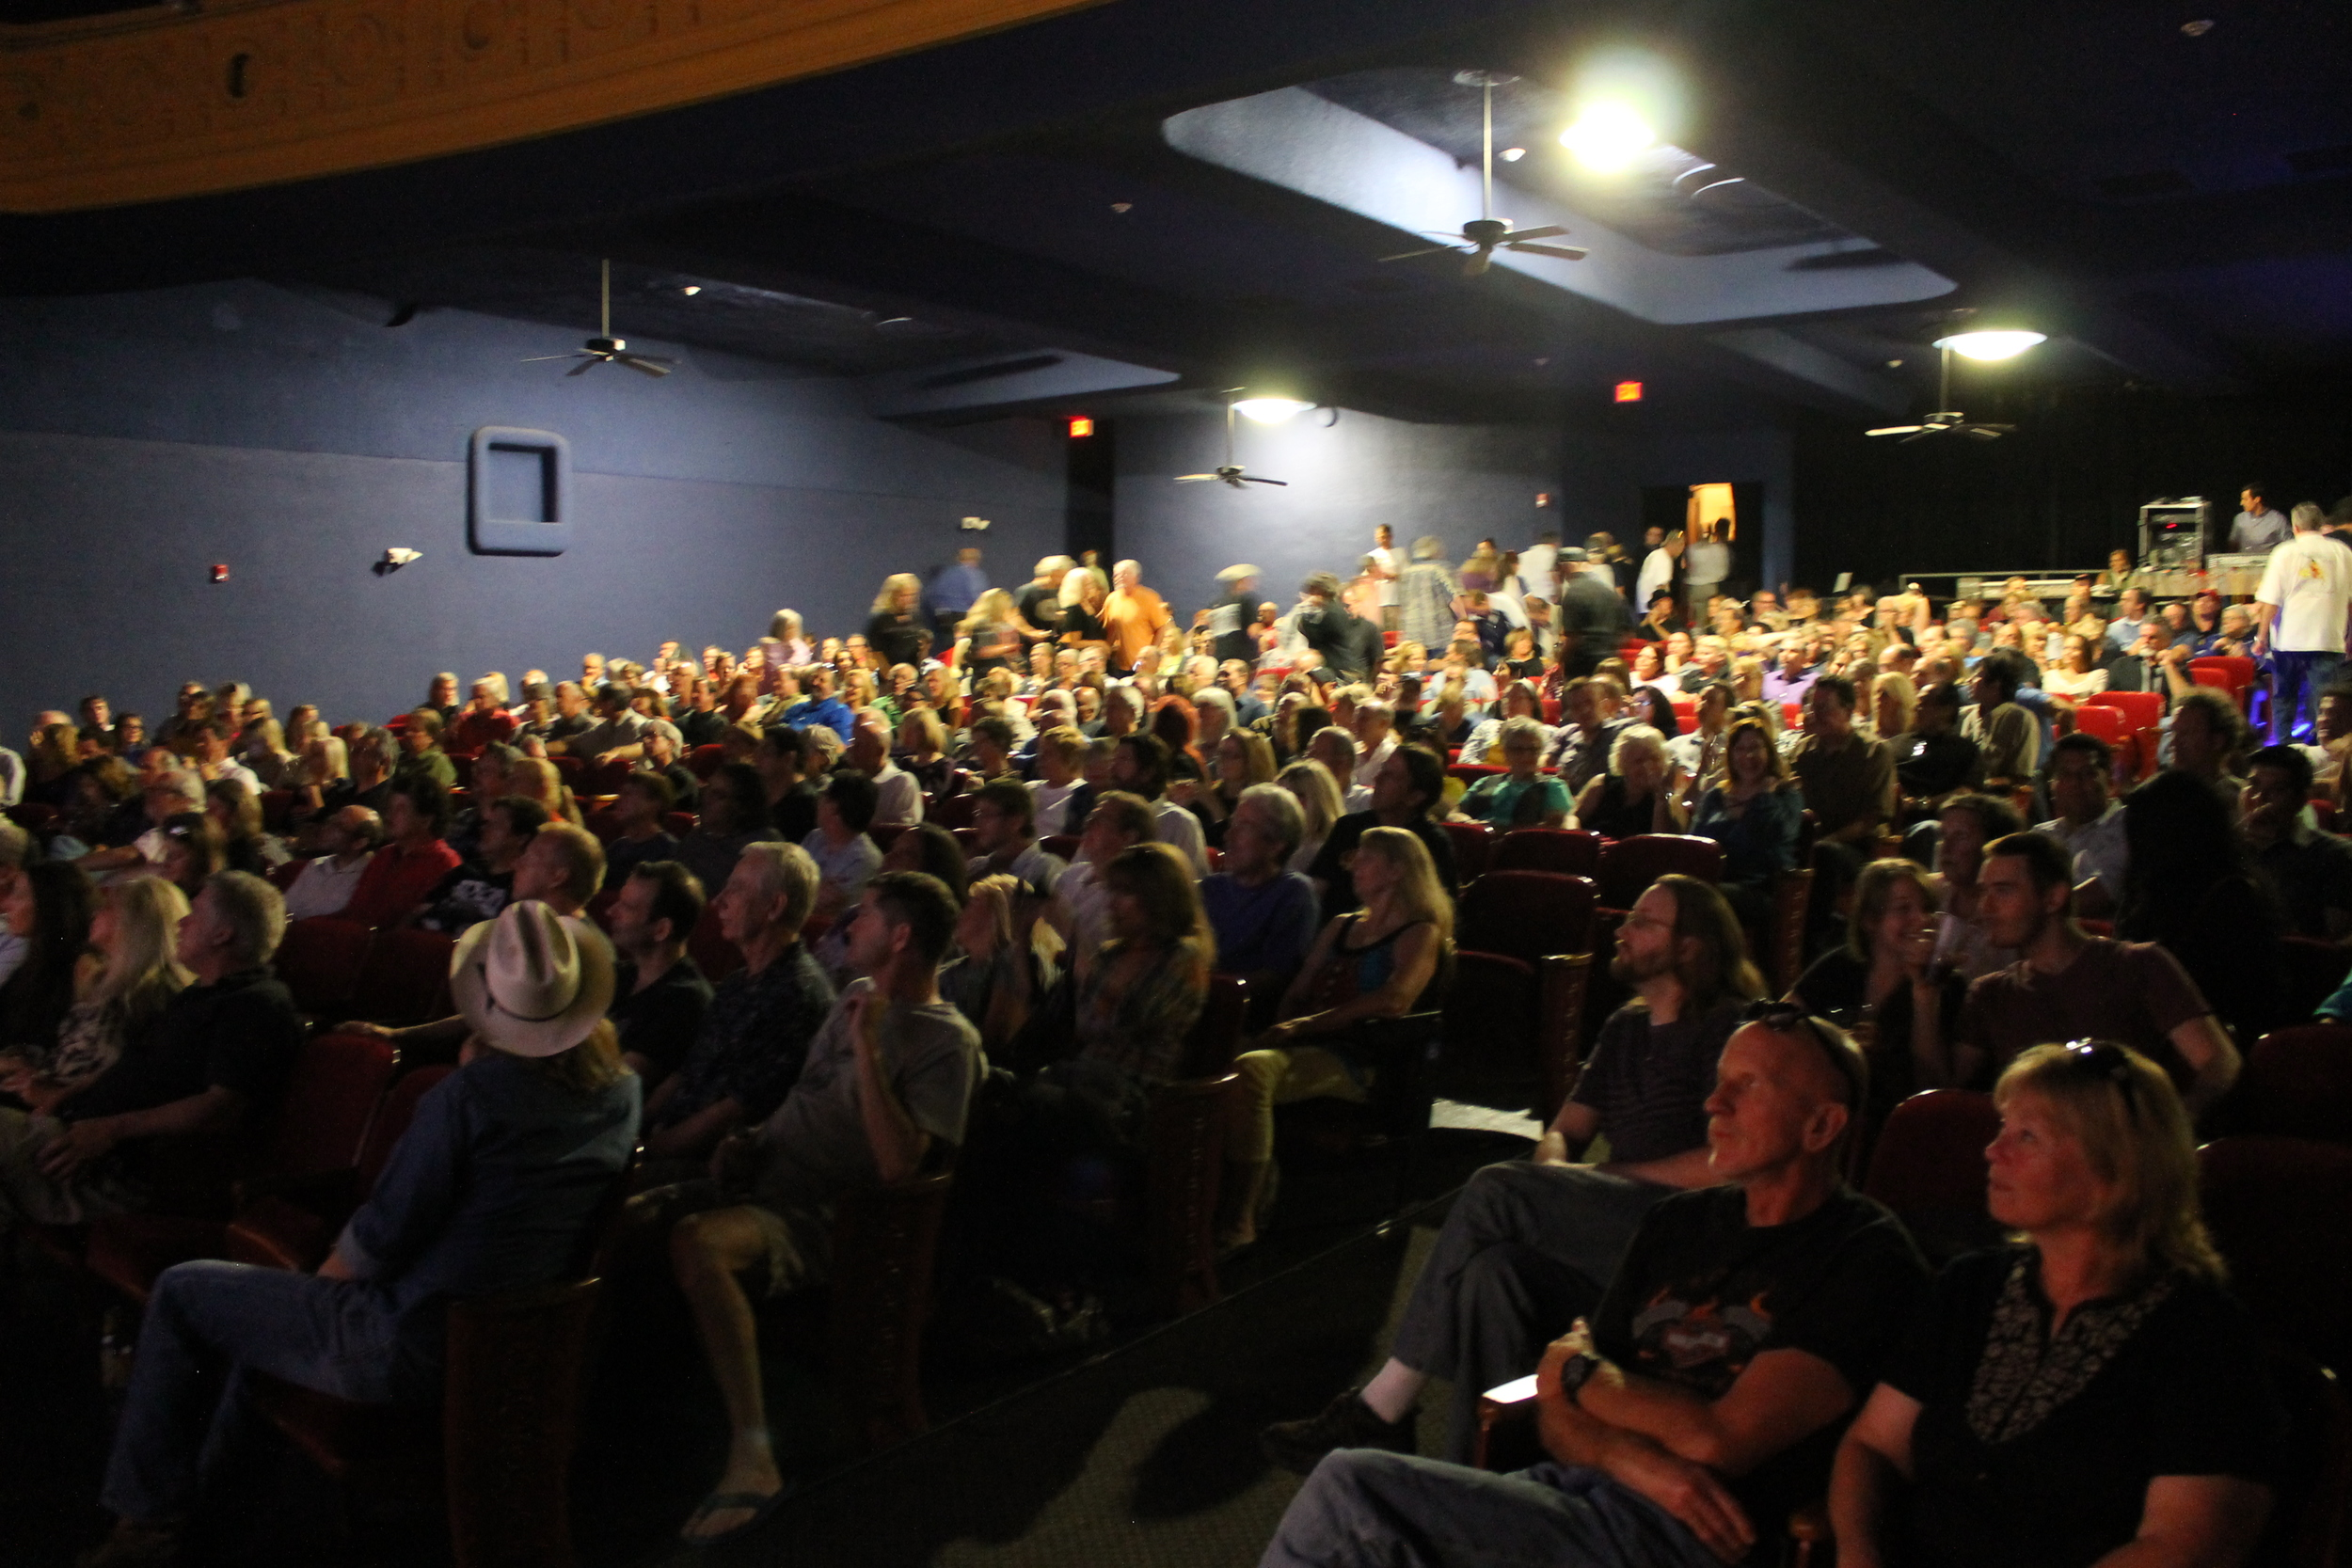 A full house, over 600 people, in the Texas Theatre for the September premiere!!!